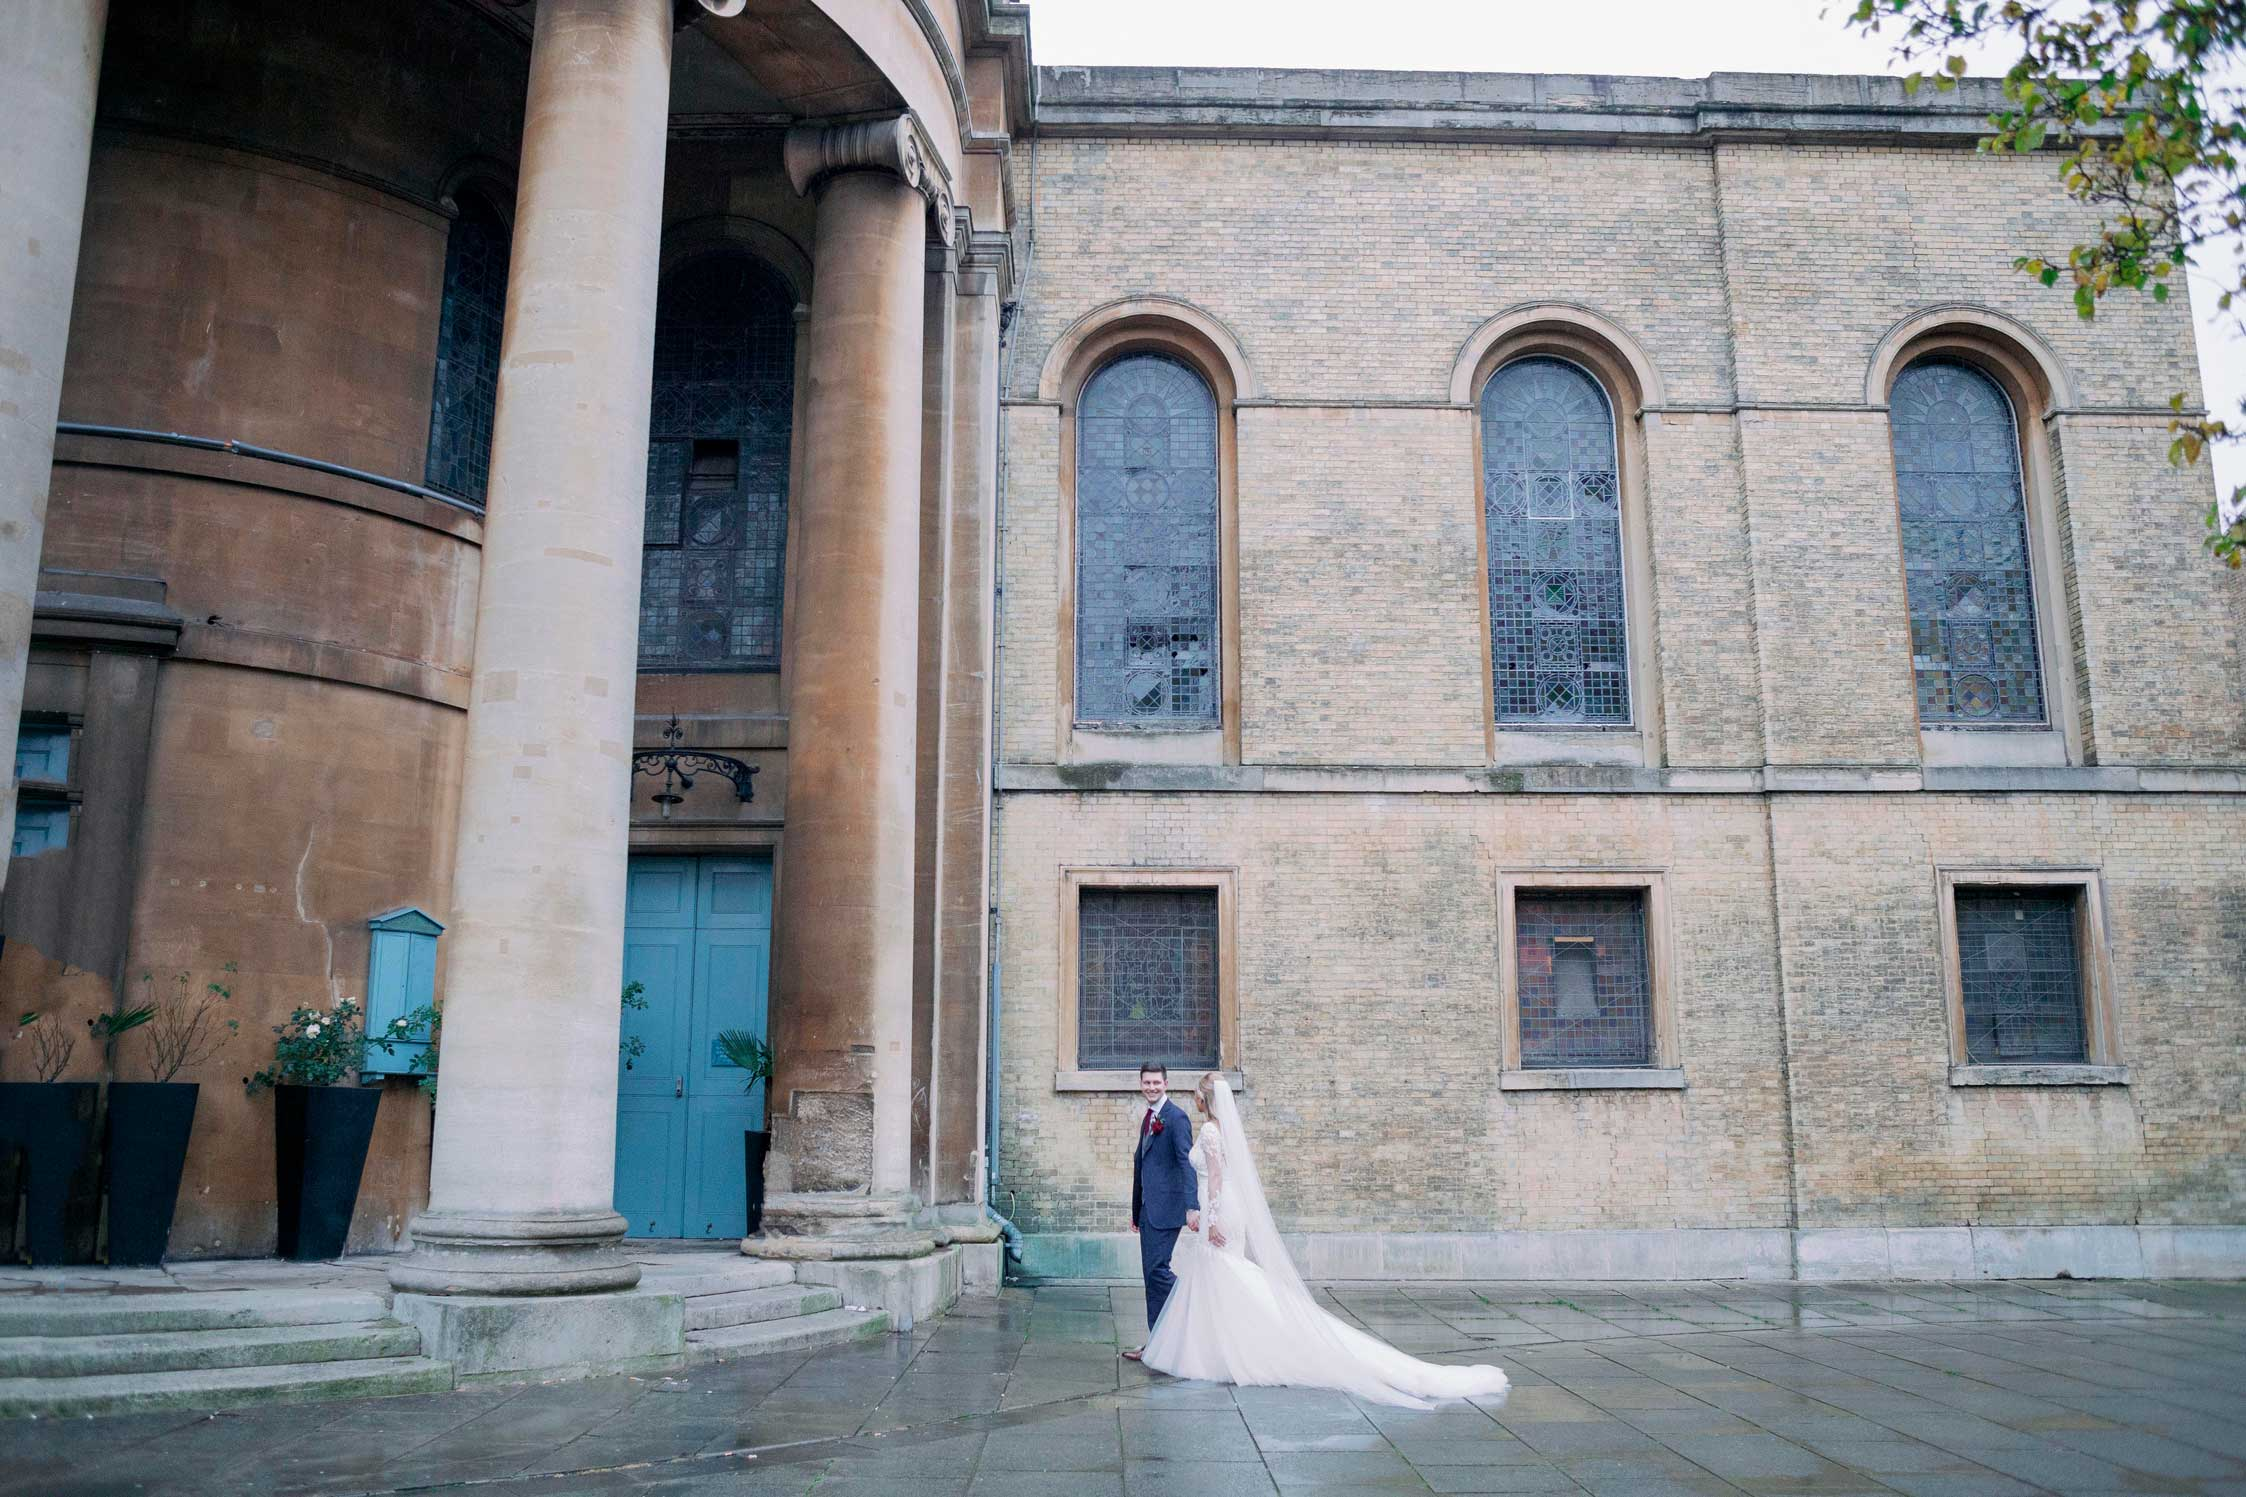 Bride and Groom on the piazza at their wedding